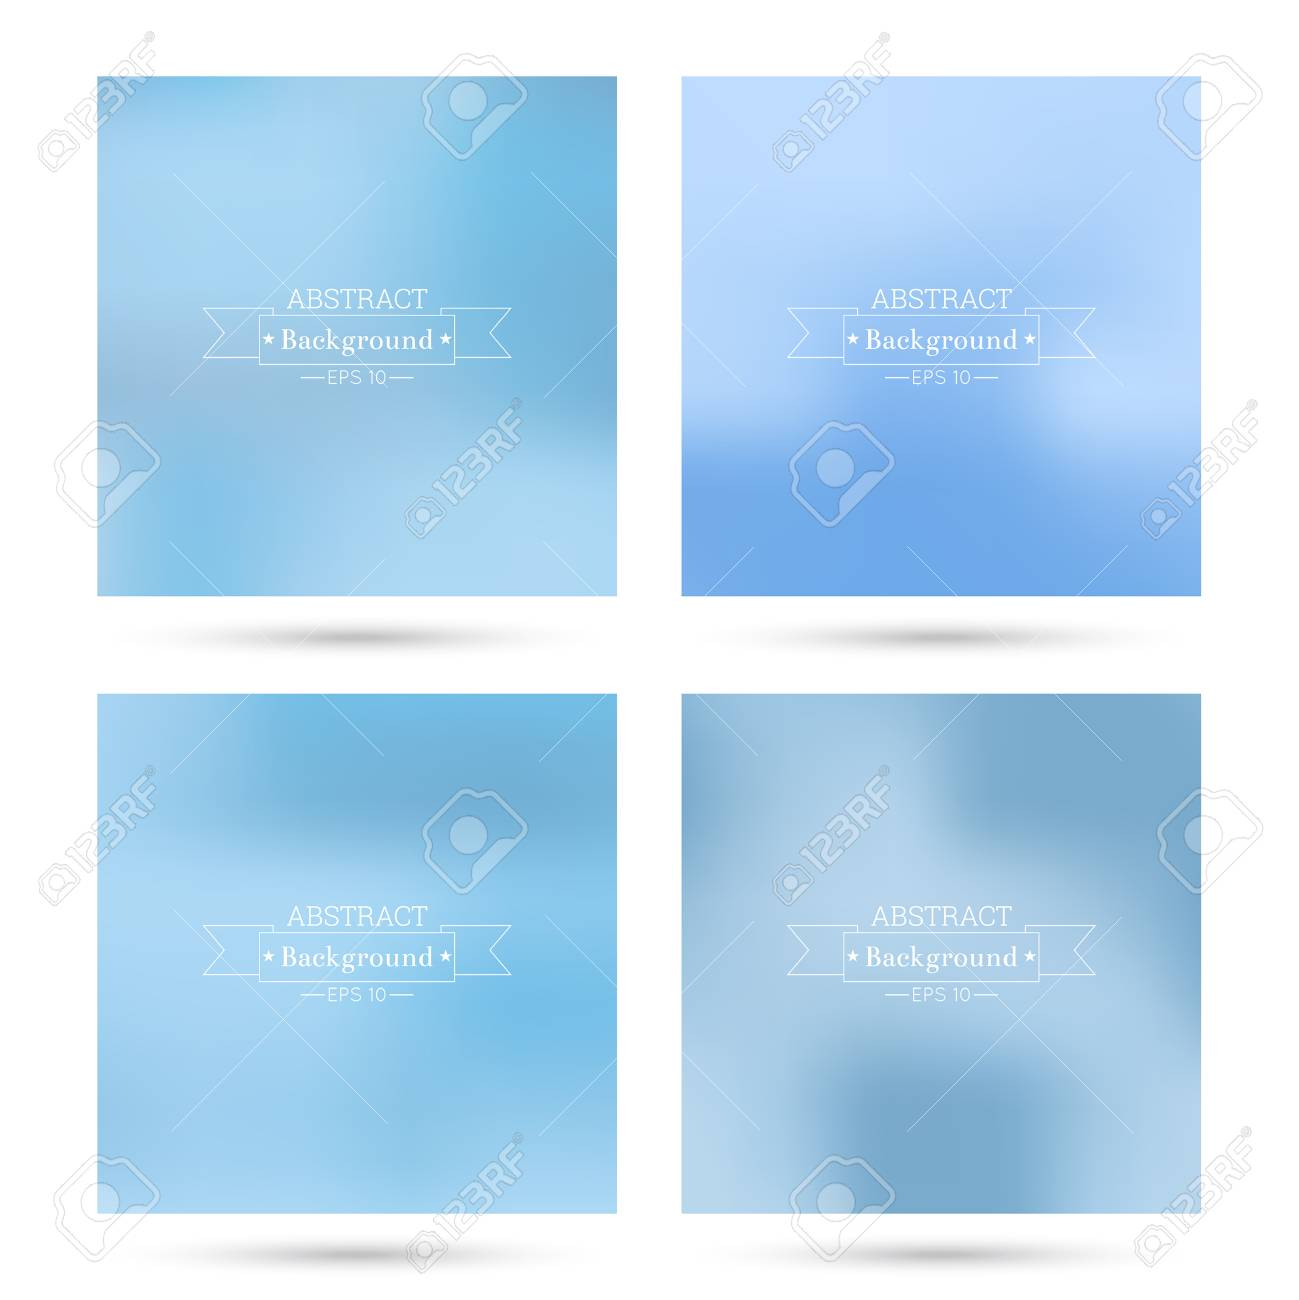 pastel blue background.html